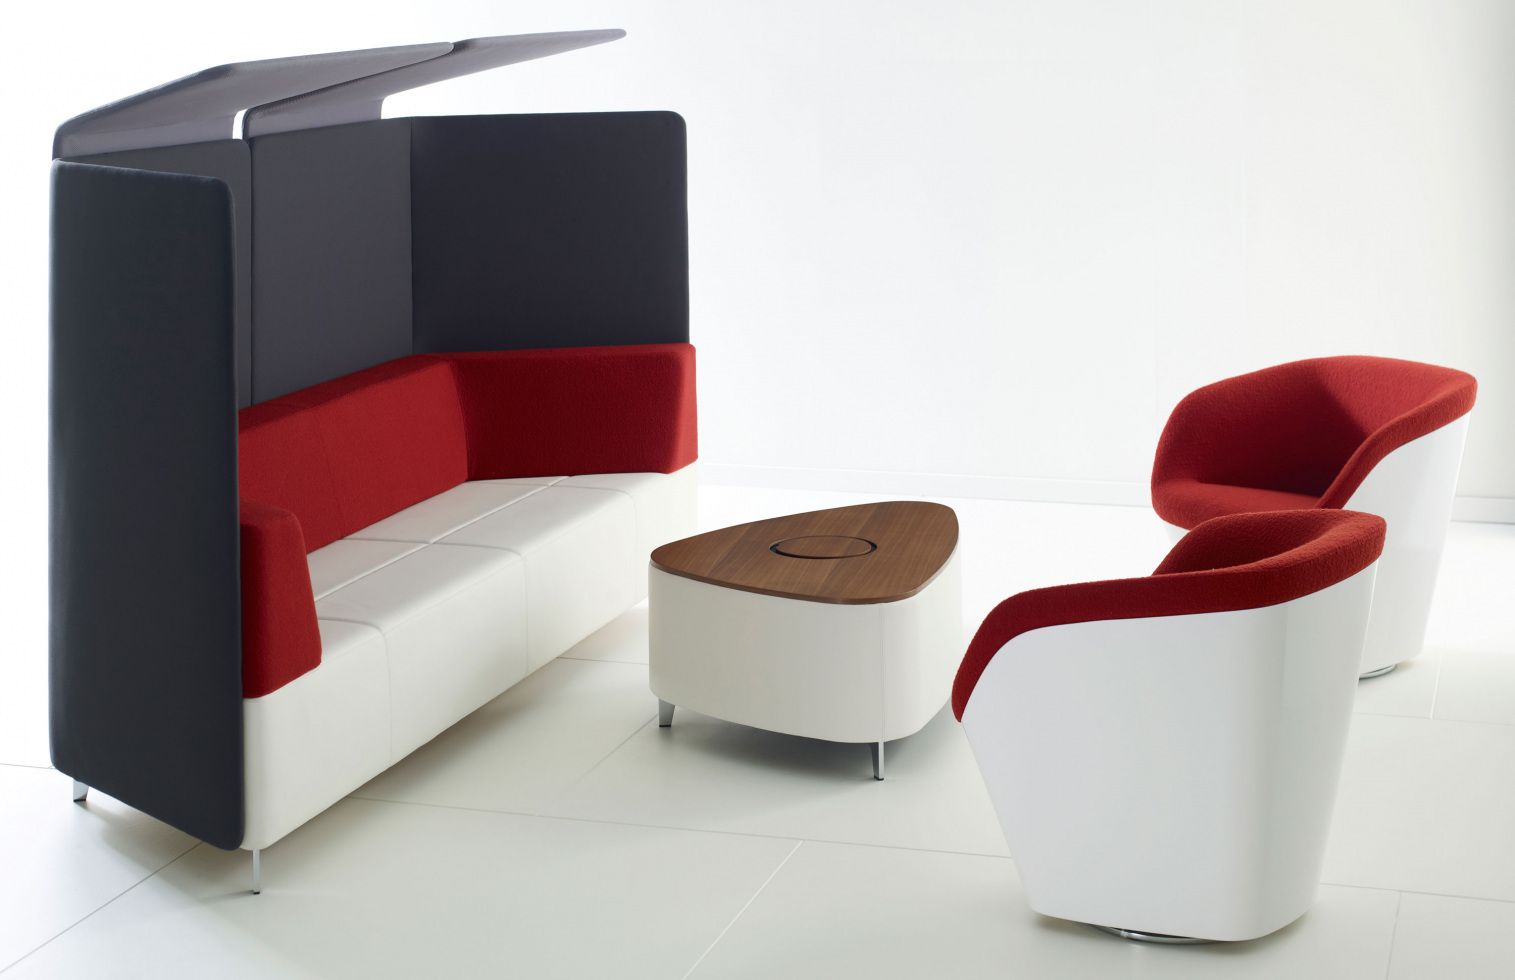 Office Lounge Chairs Home Furniture Sets Check More At Http Www Drjamesghoodblog